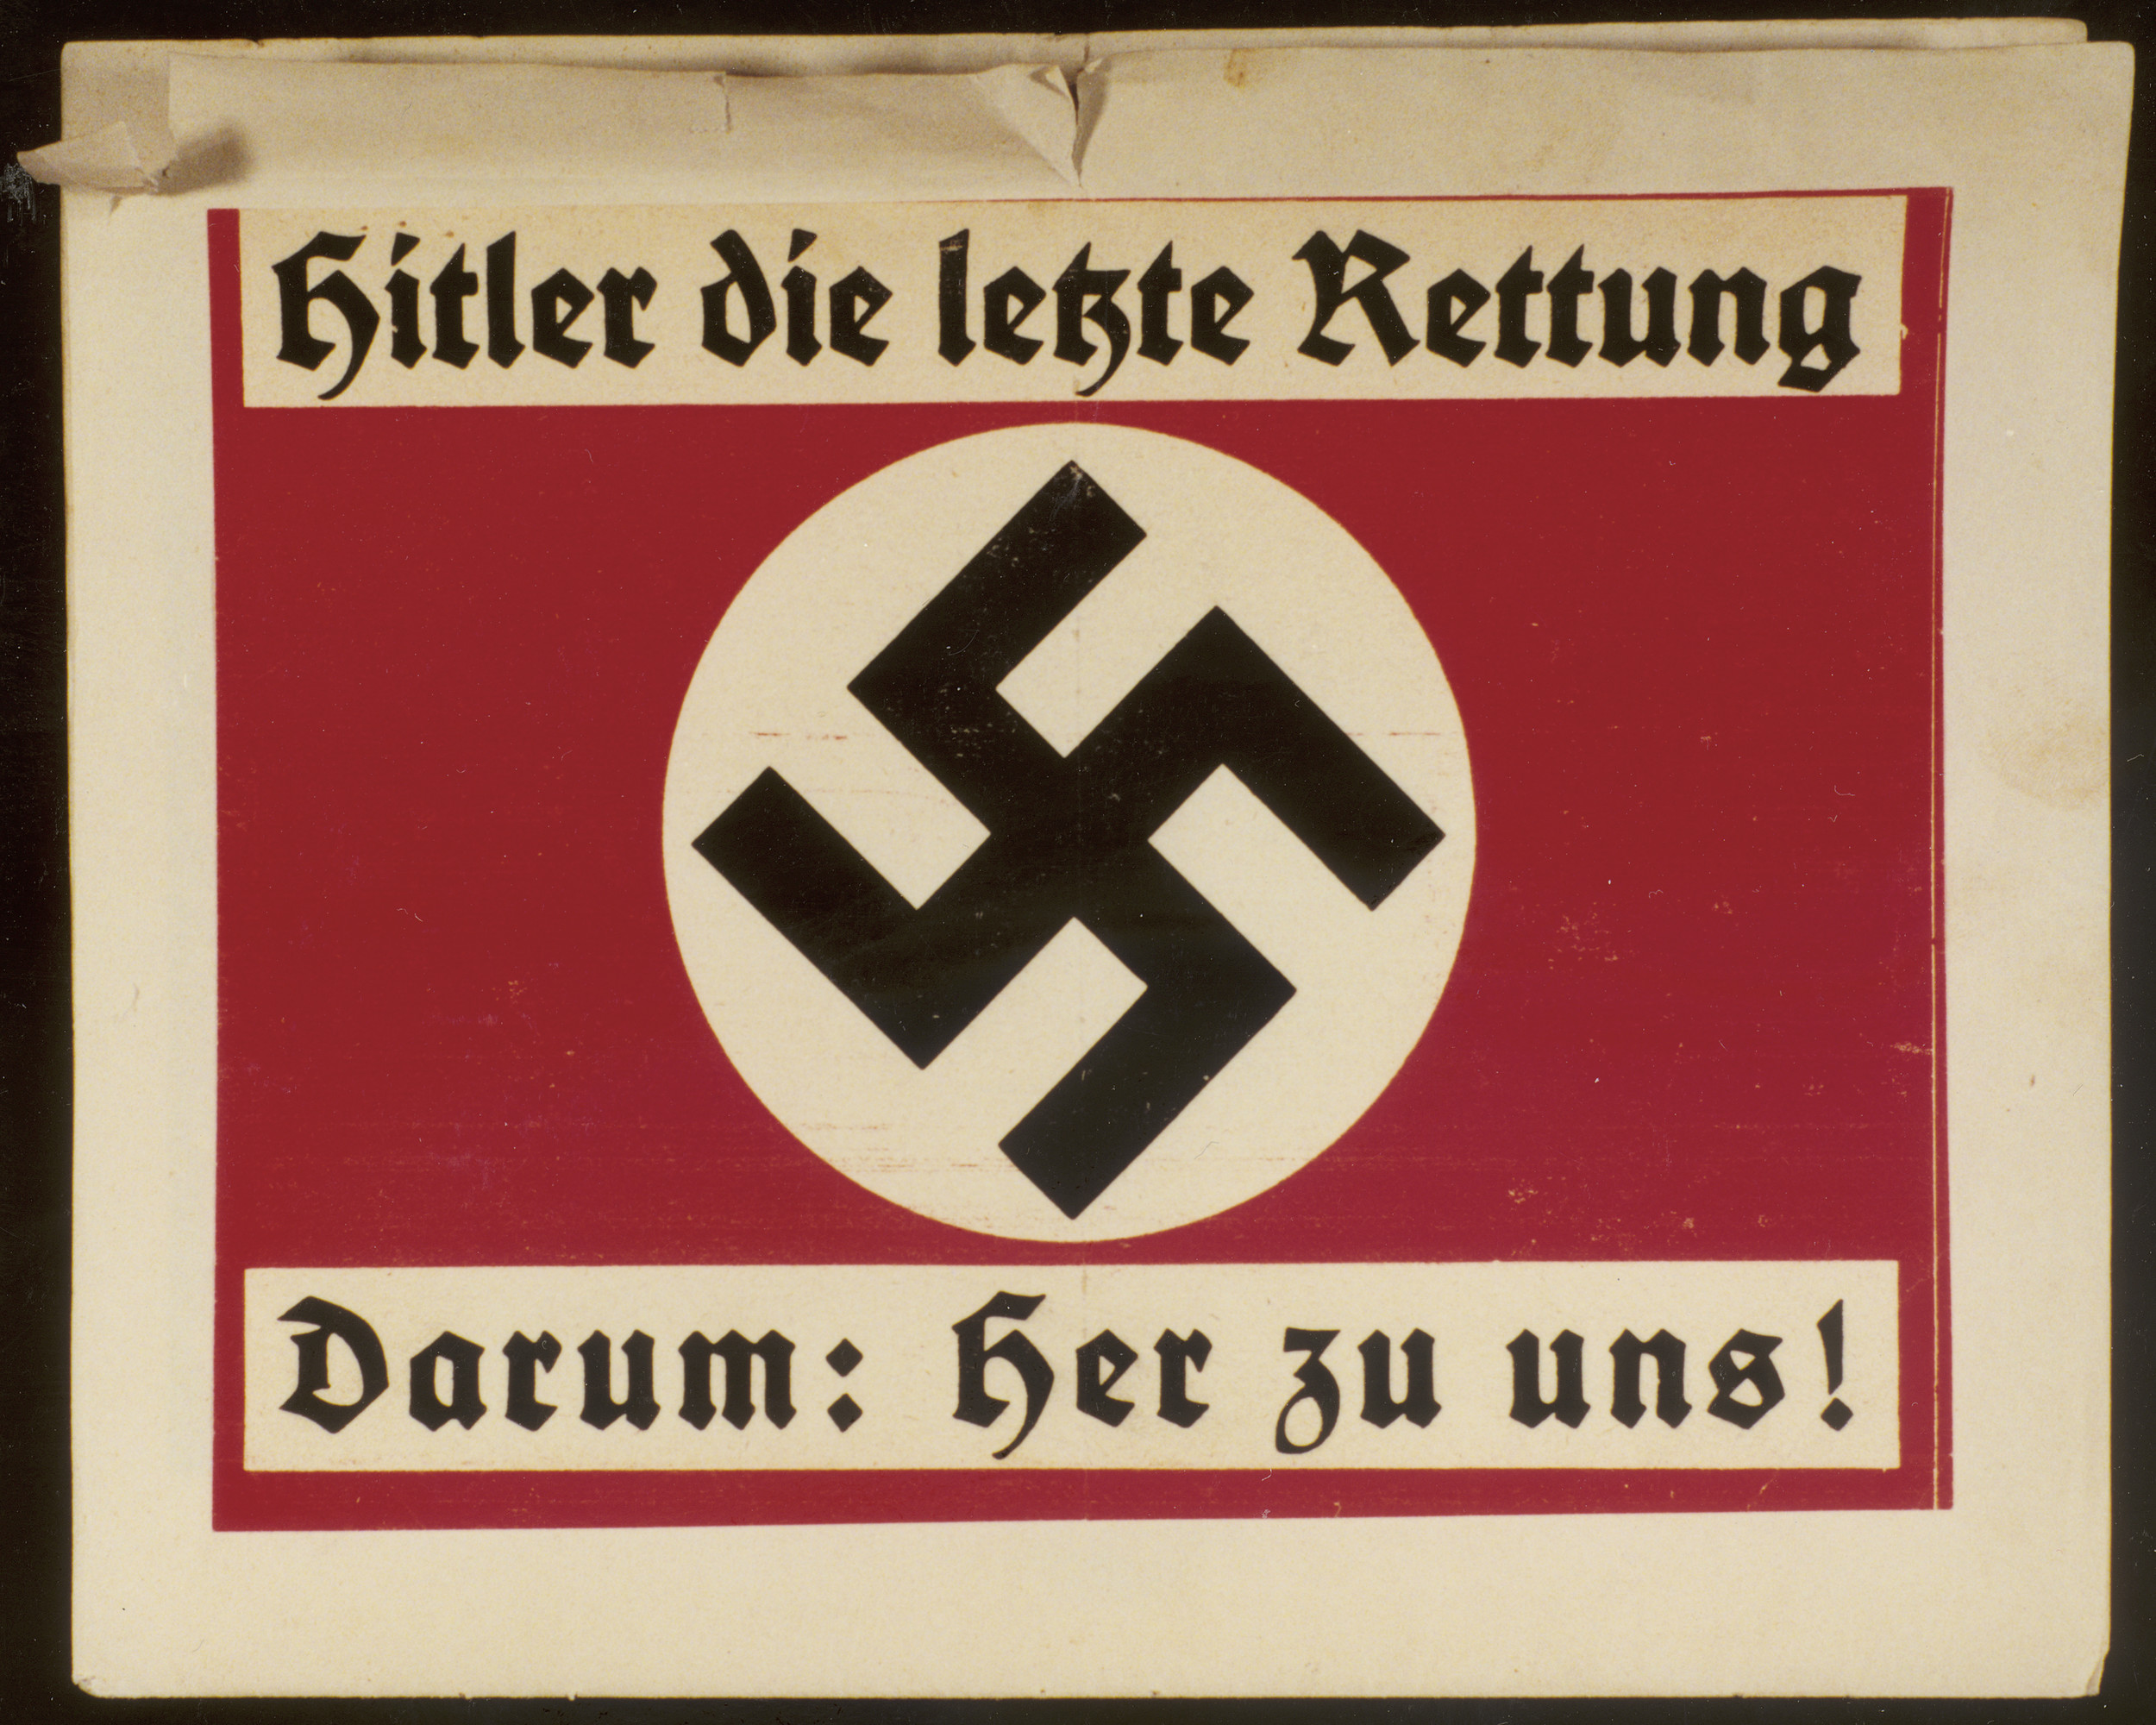 """Austrian election poster depicting a Nazi flag with a black swastika on a red background.  The German text above reads: """"Hitler our last hope""""; and below: """"Therefore come to us!"""""""